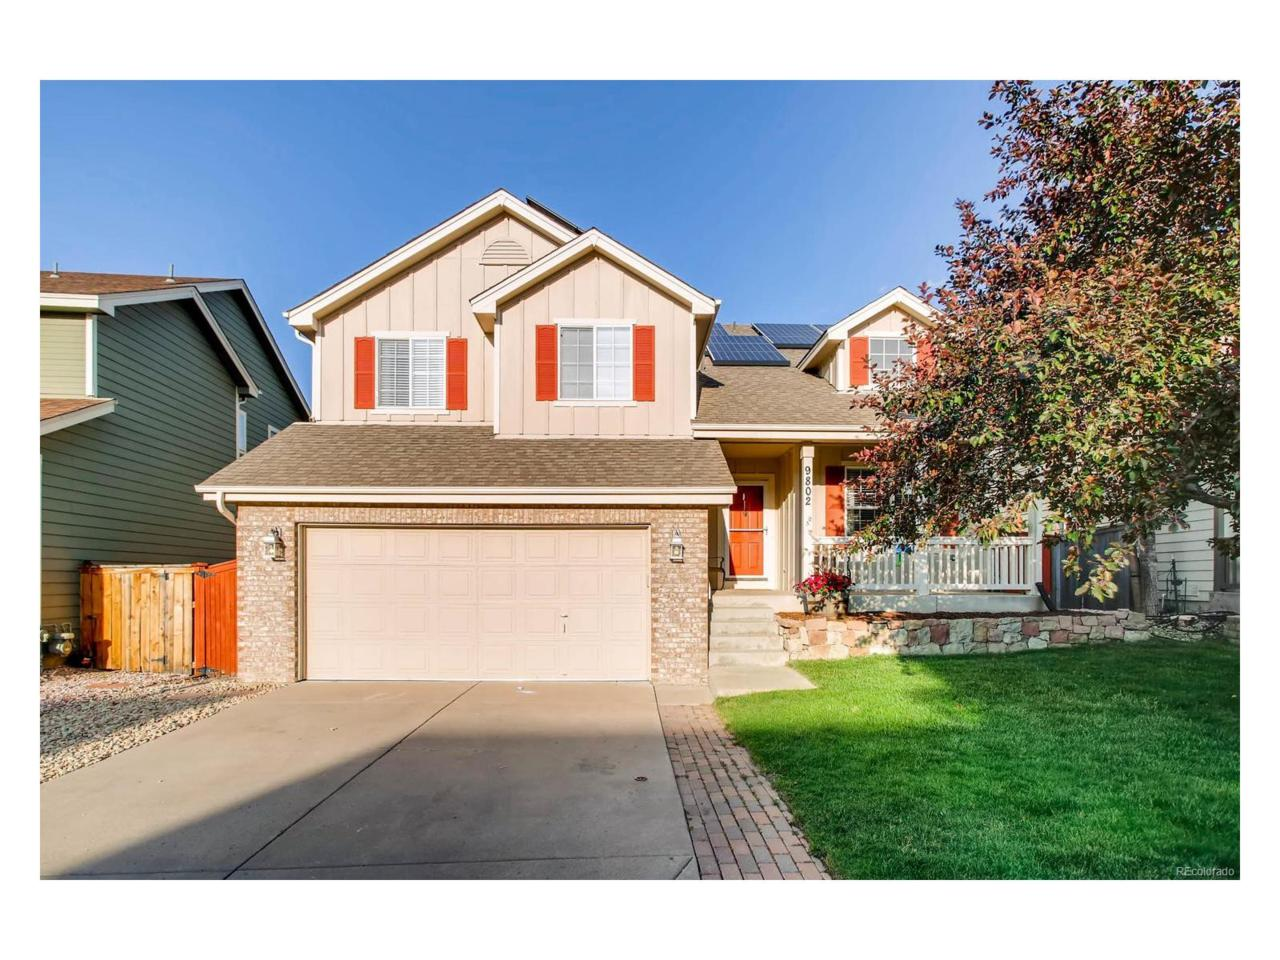 9802 Bucknell Court, Highlands Ranch, CO 80129 (MLS #4437009) :: 8z Real Estate